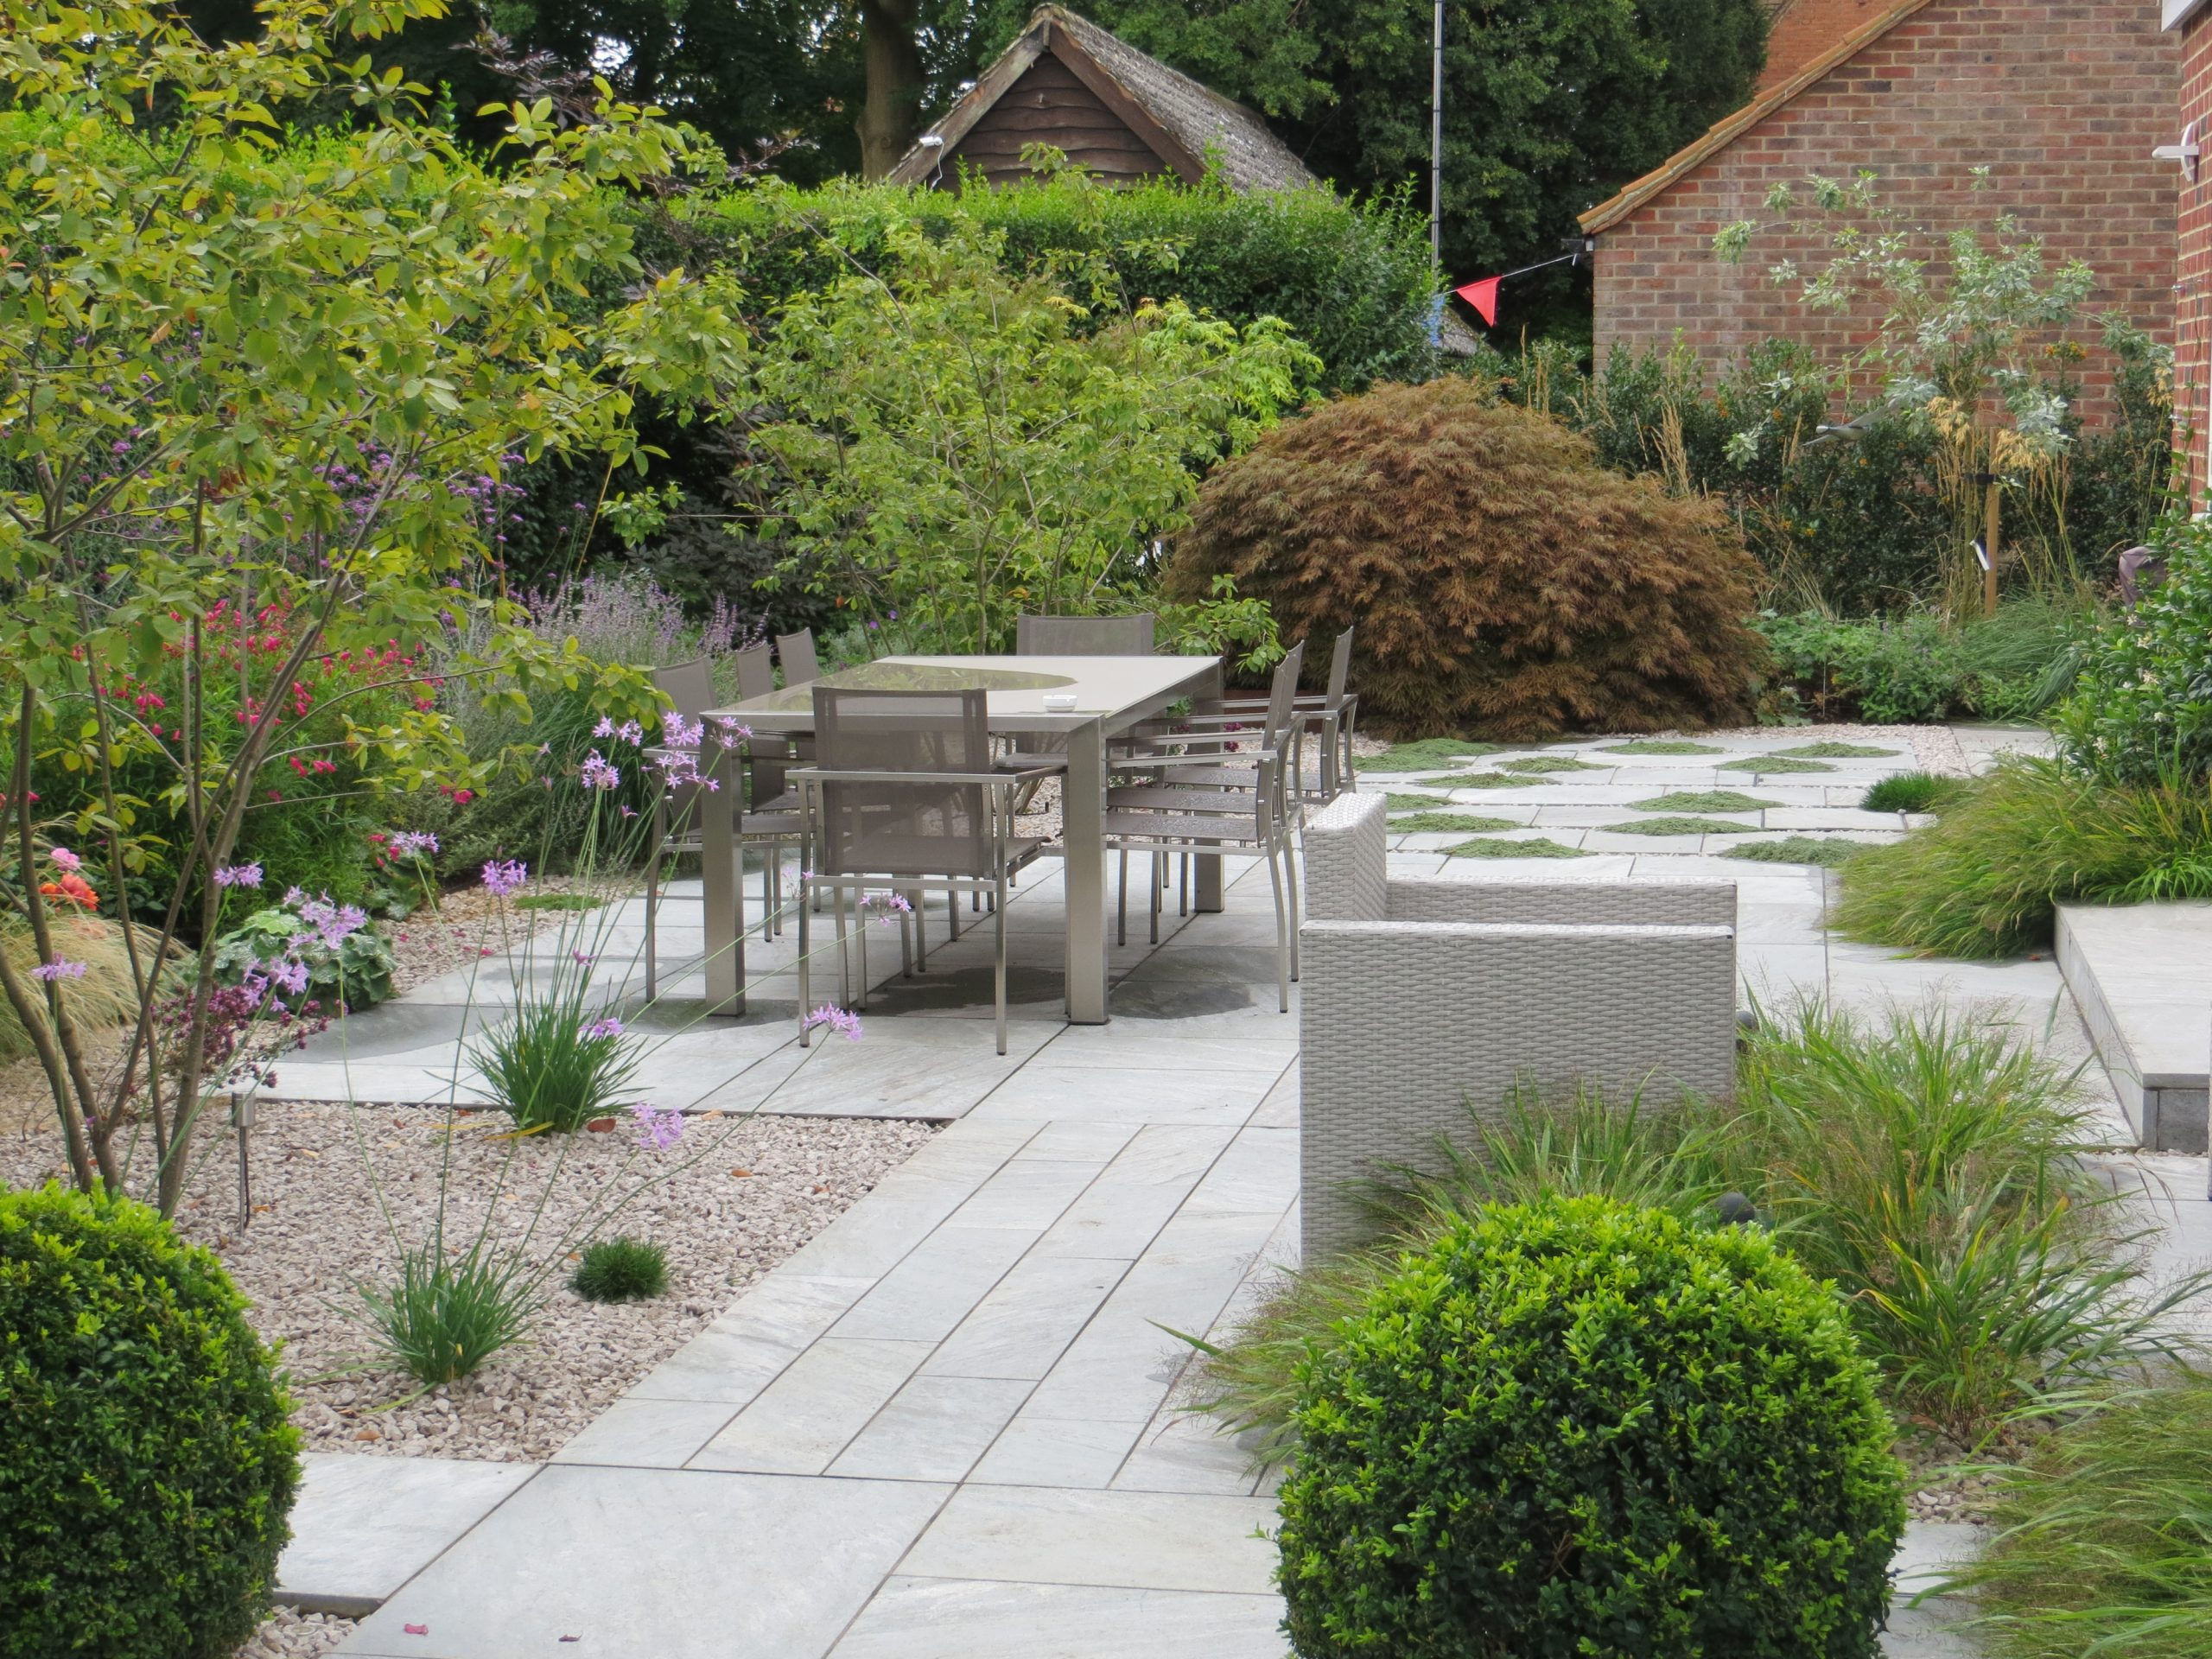 Shows outdoor dining area with table and chairs